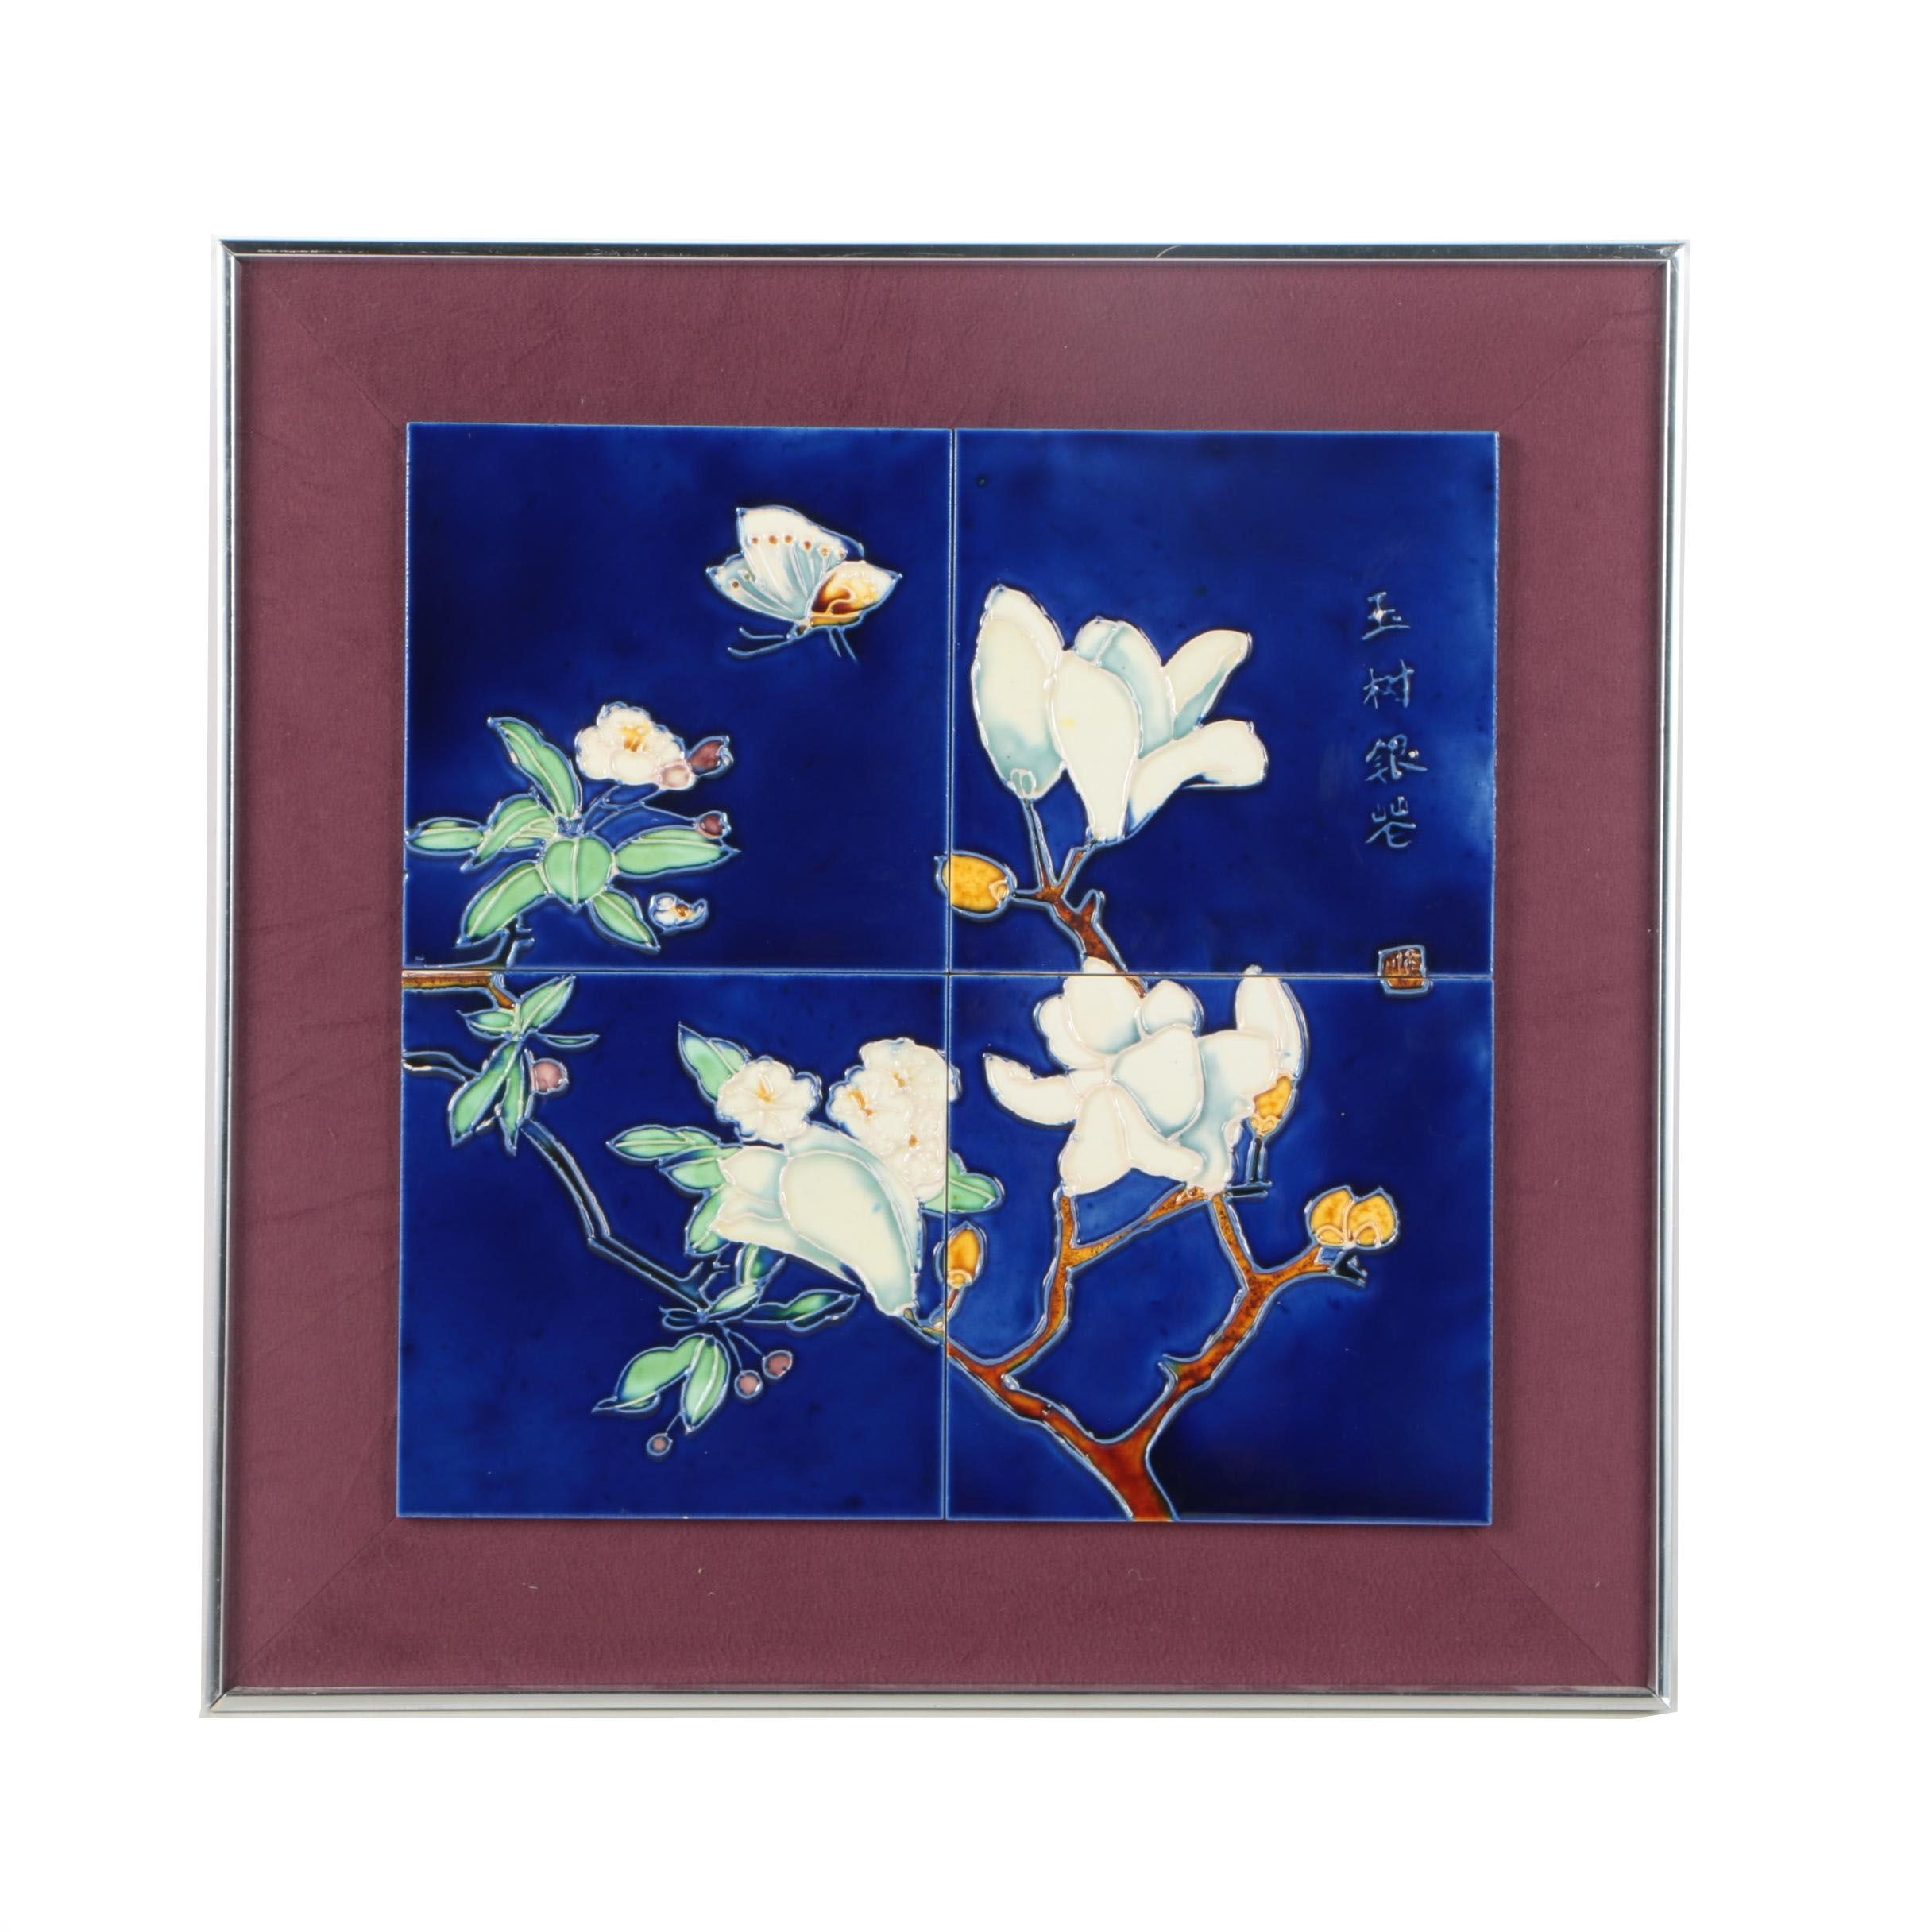 Hand Painted Chinese Ceramic Tiles of Spring Blossoms